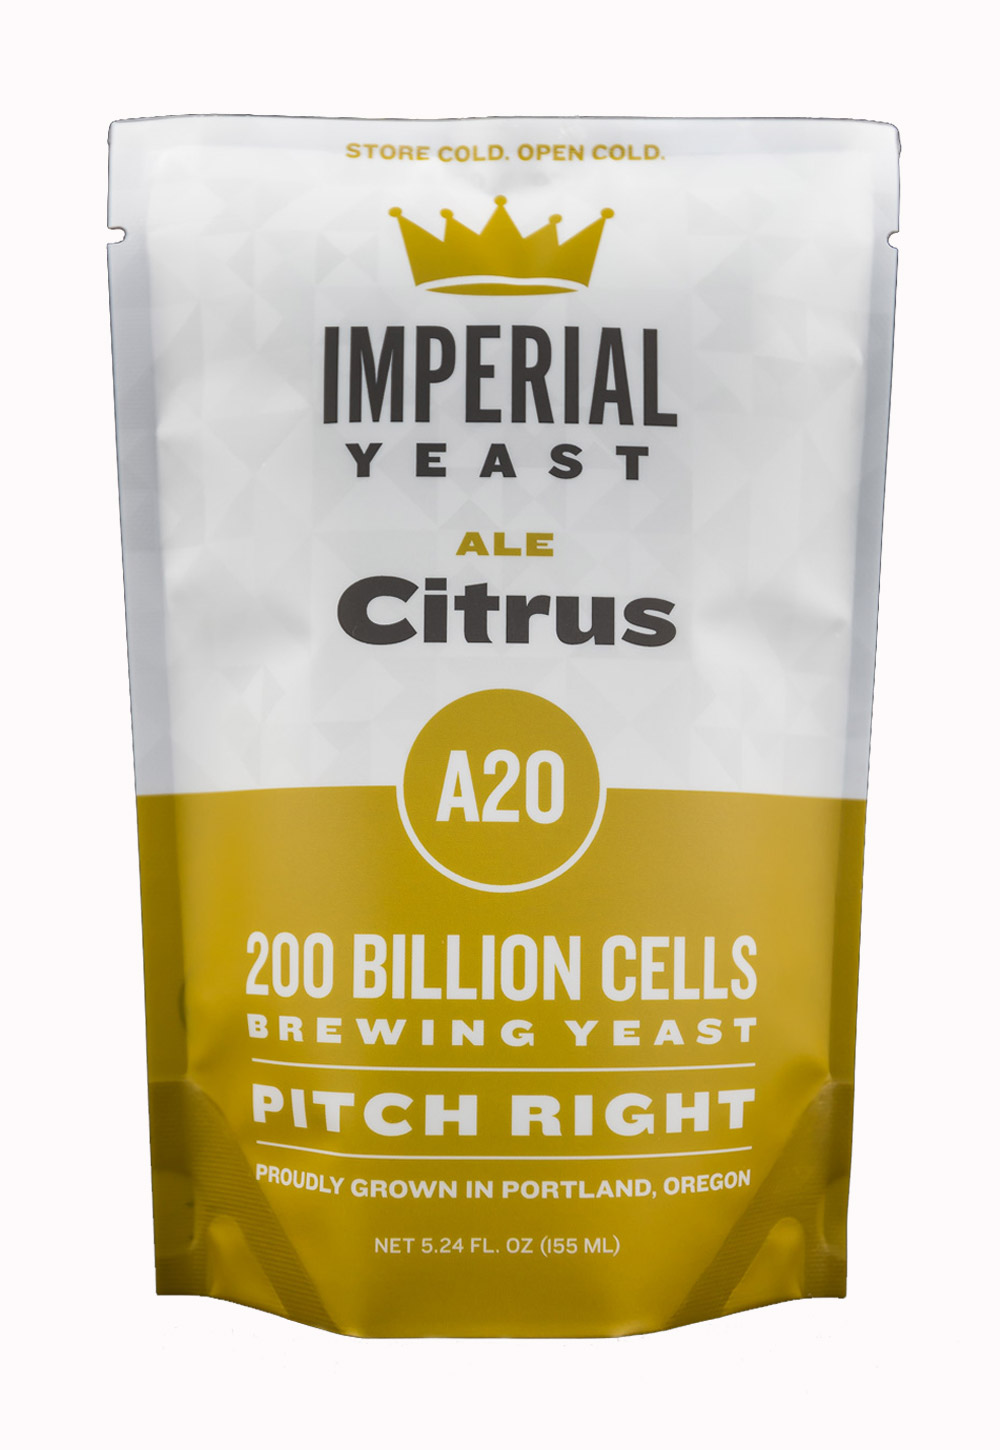 23408 imperial yeast a20 citrus ale yeast